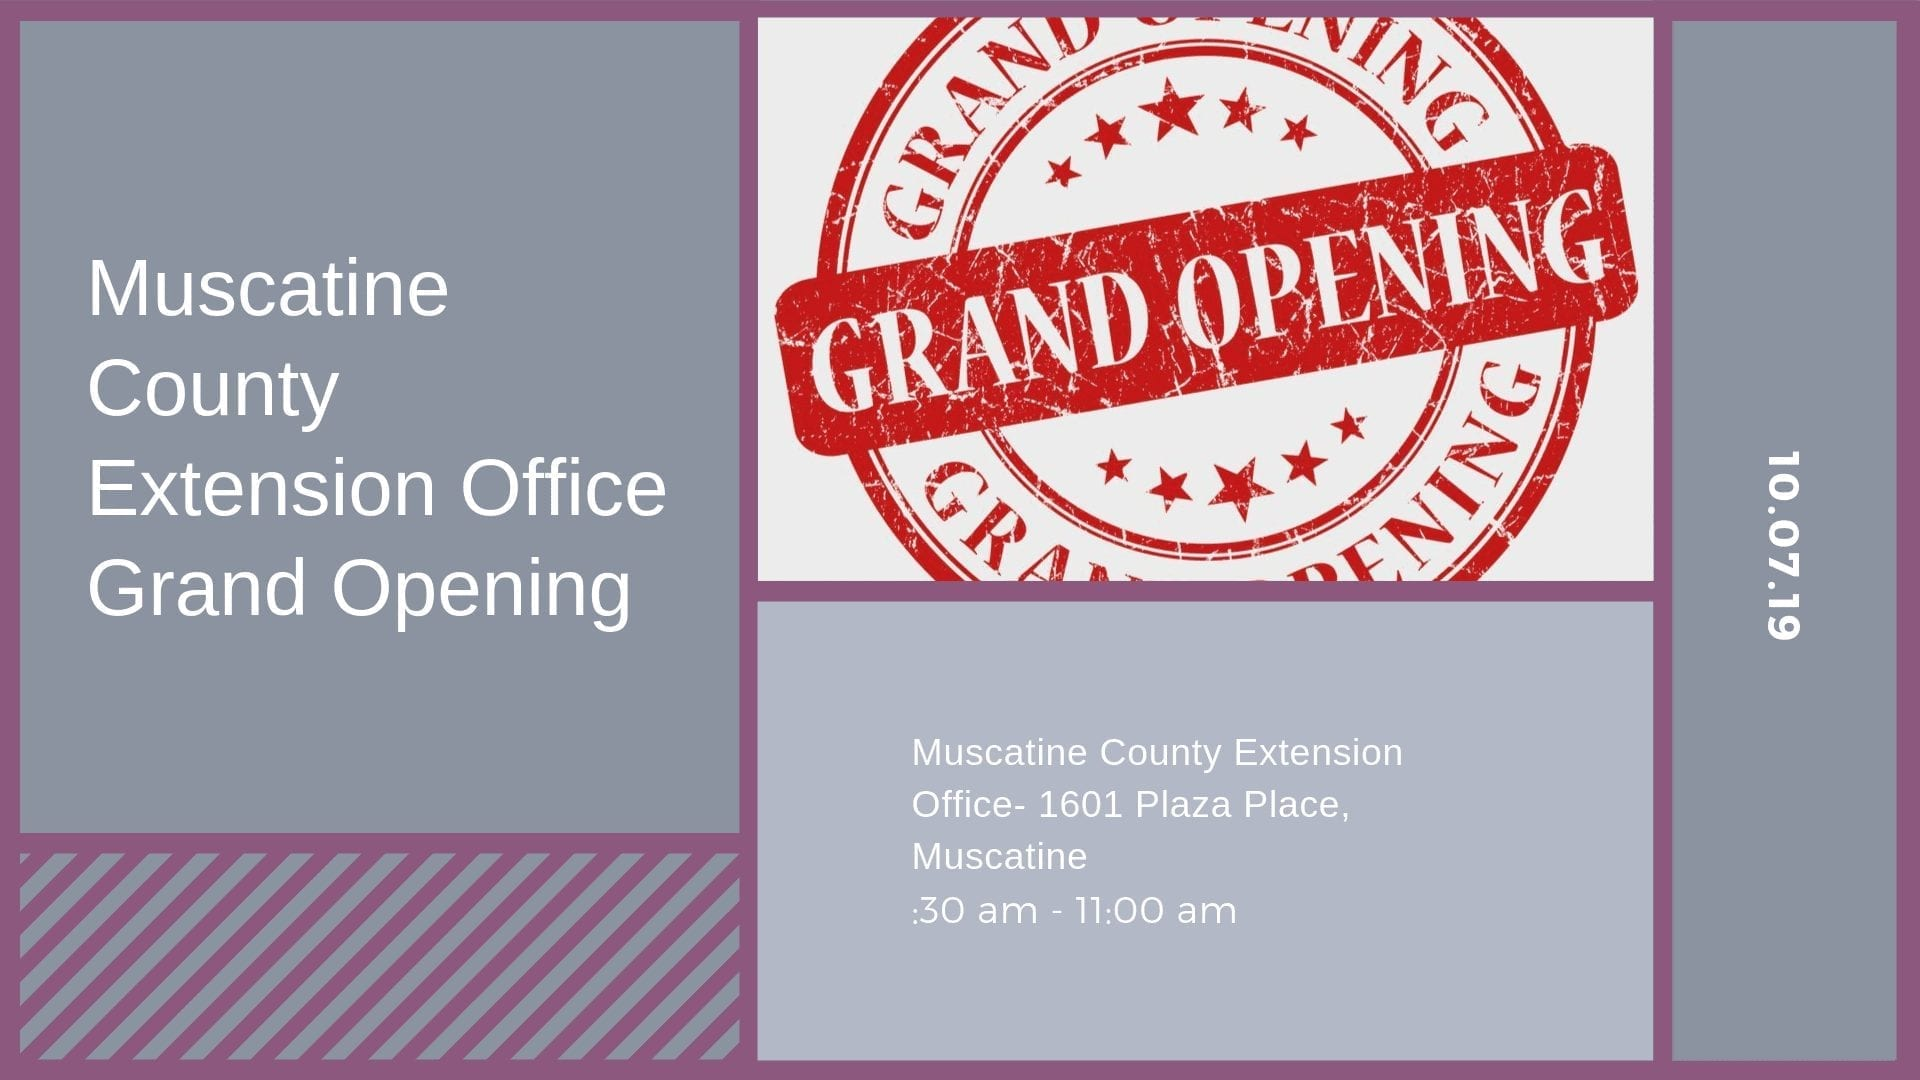 Muscatine County Extension Office Grand Opening